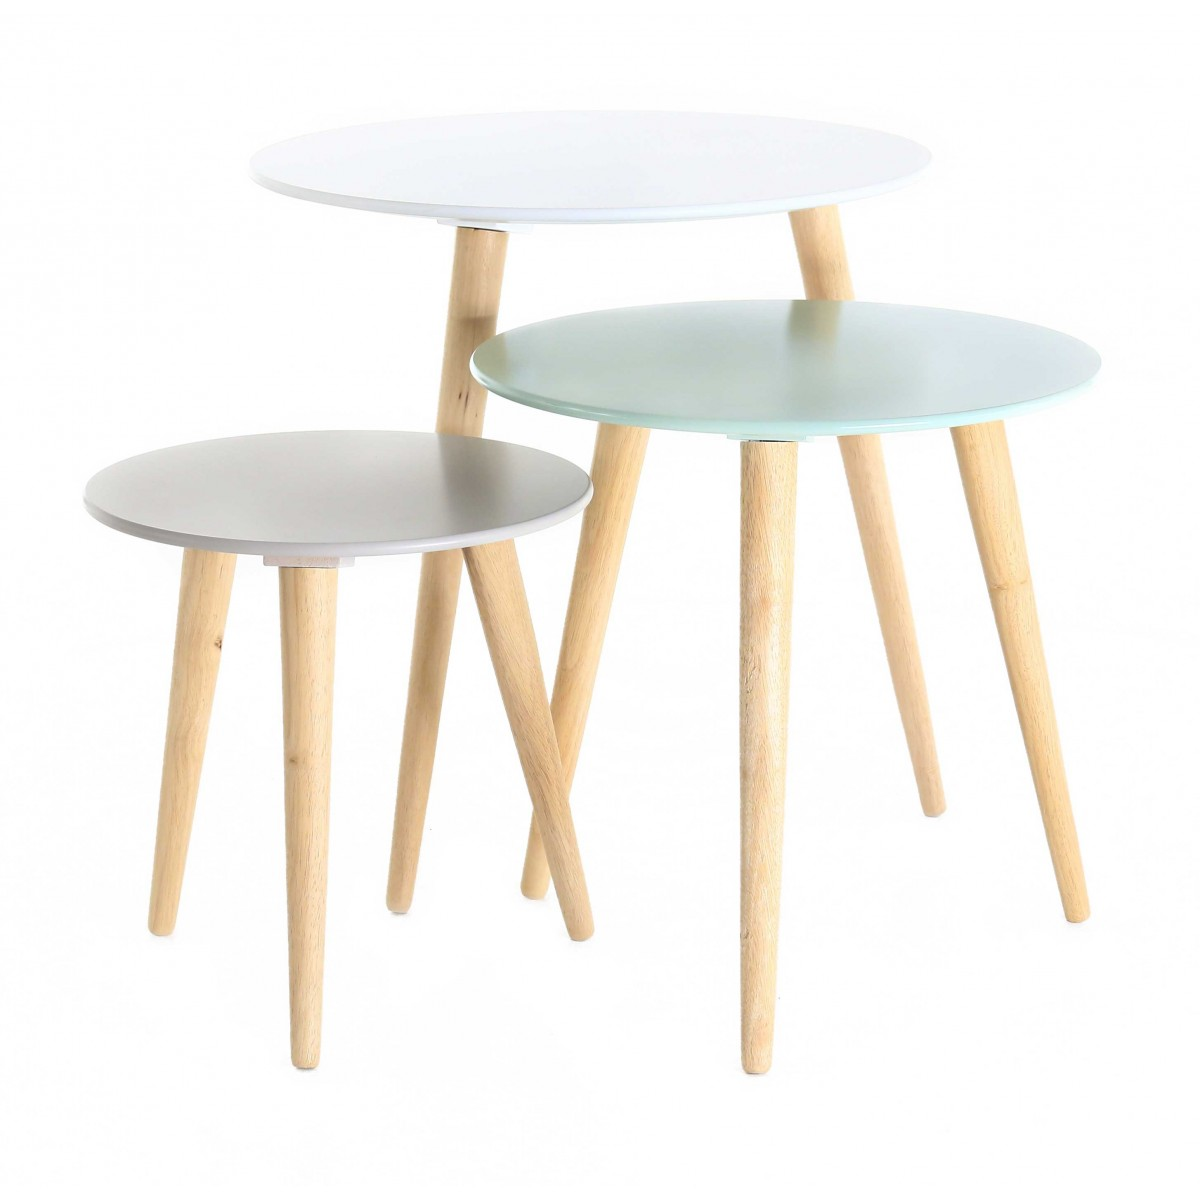 Set de 3 tables gigognes rondes scandinaves mooviin - Table en bois blanche ...